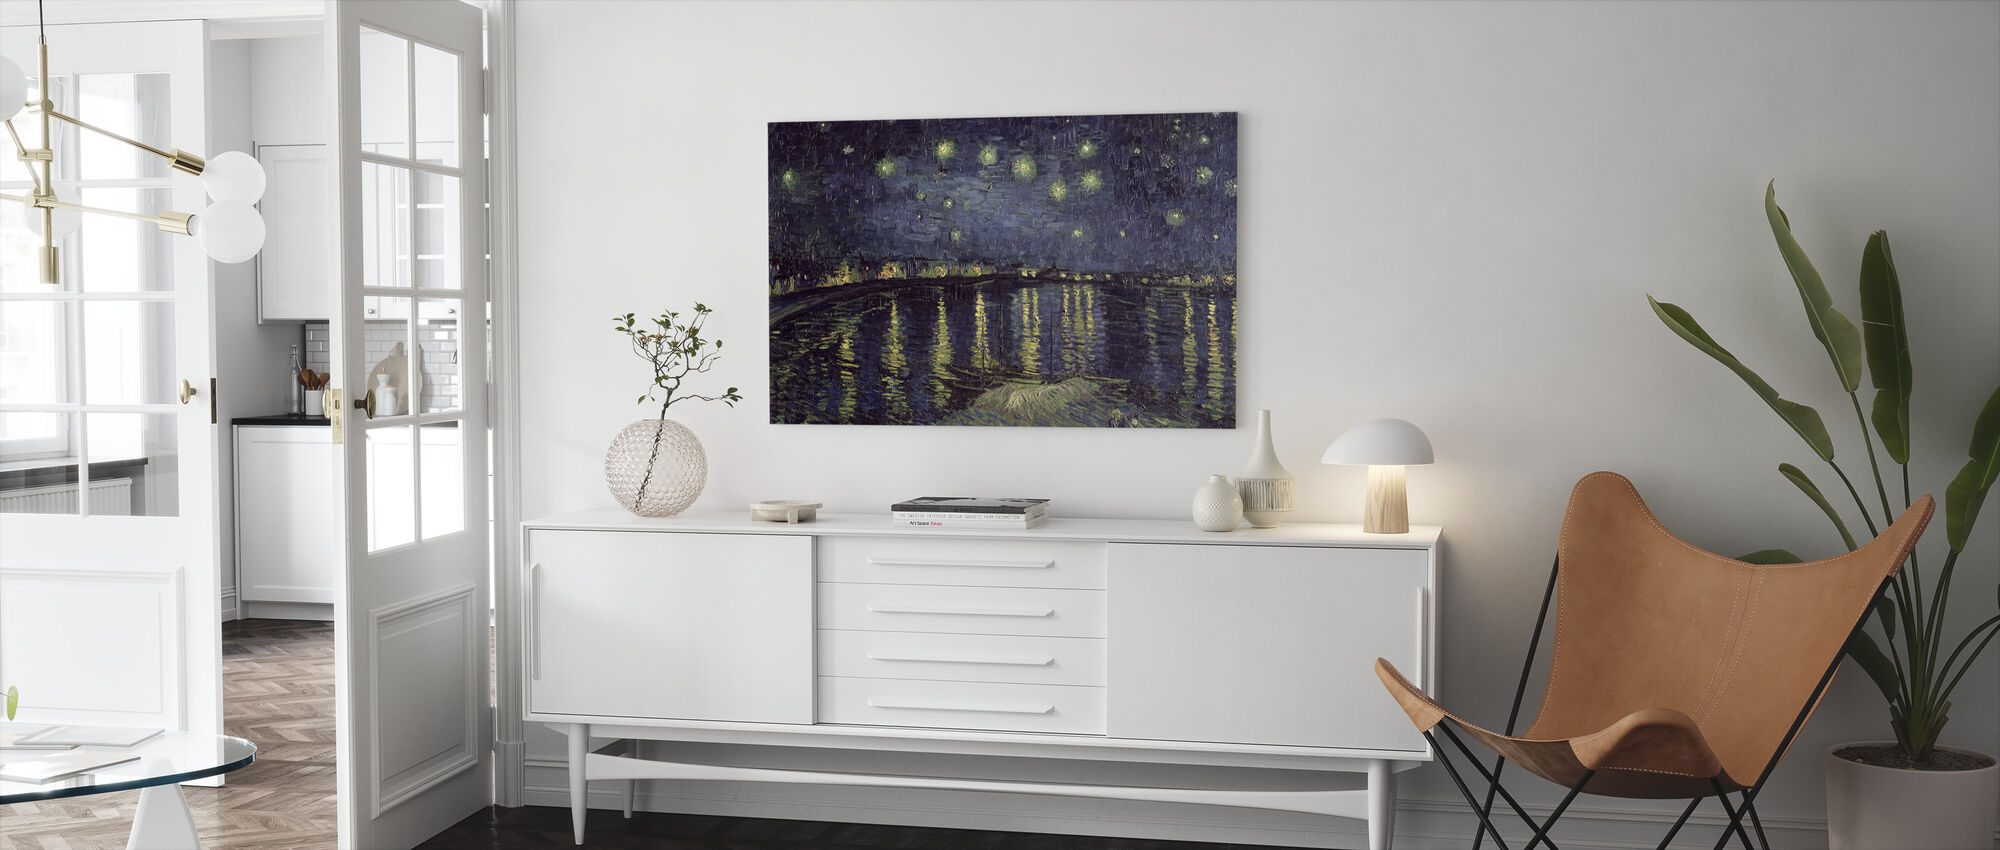 Starry Night - Vincent van Gogh - Canvas print - Living Room